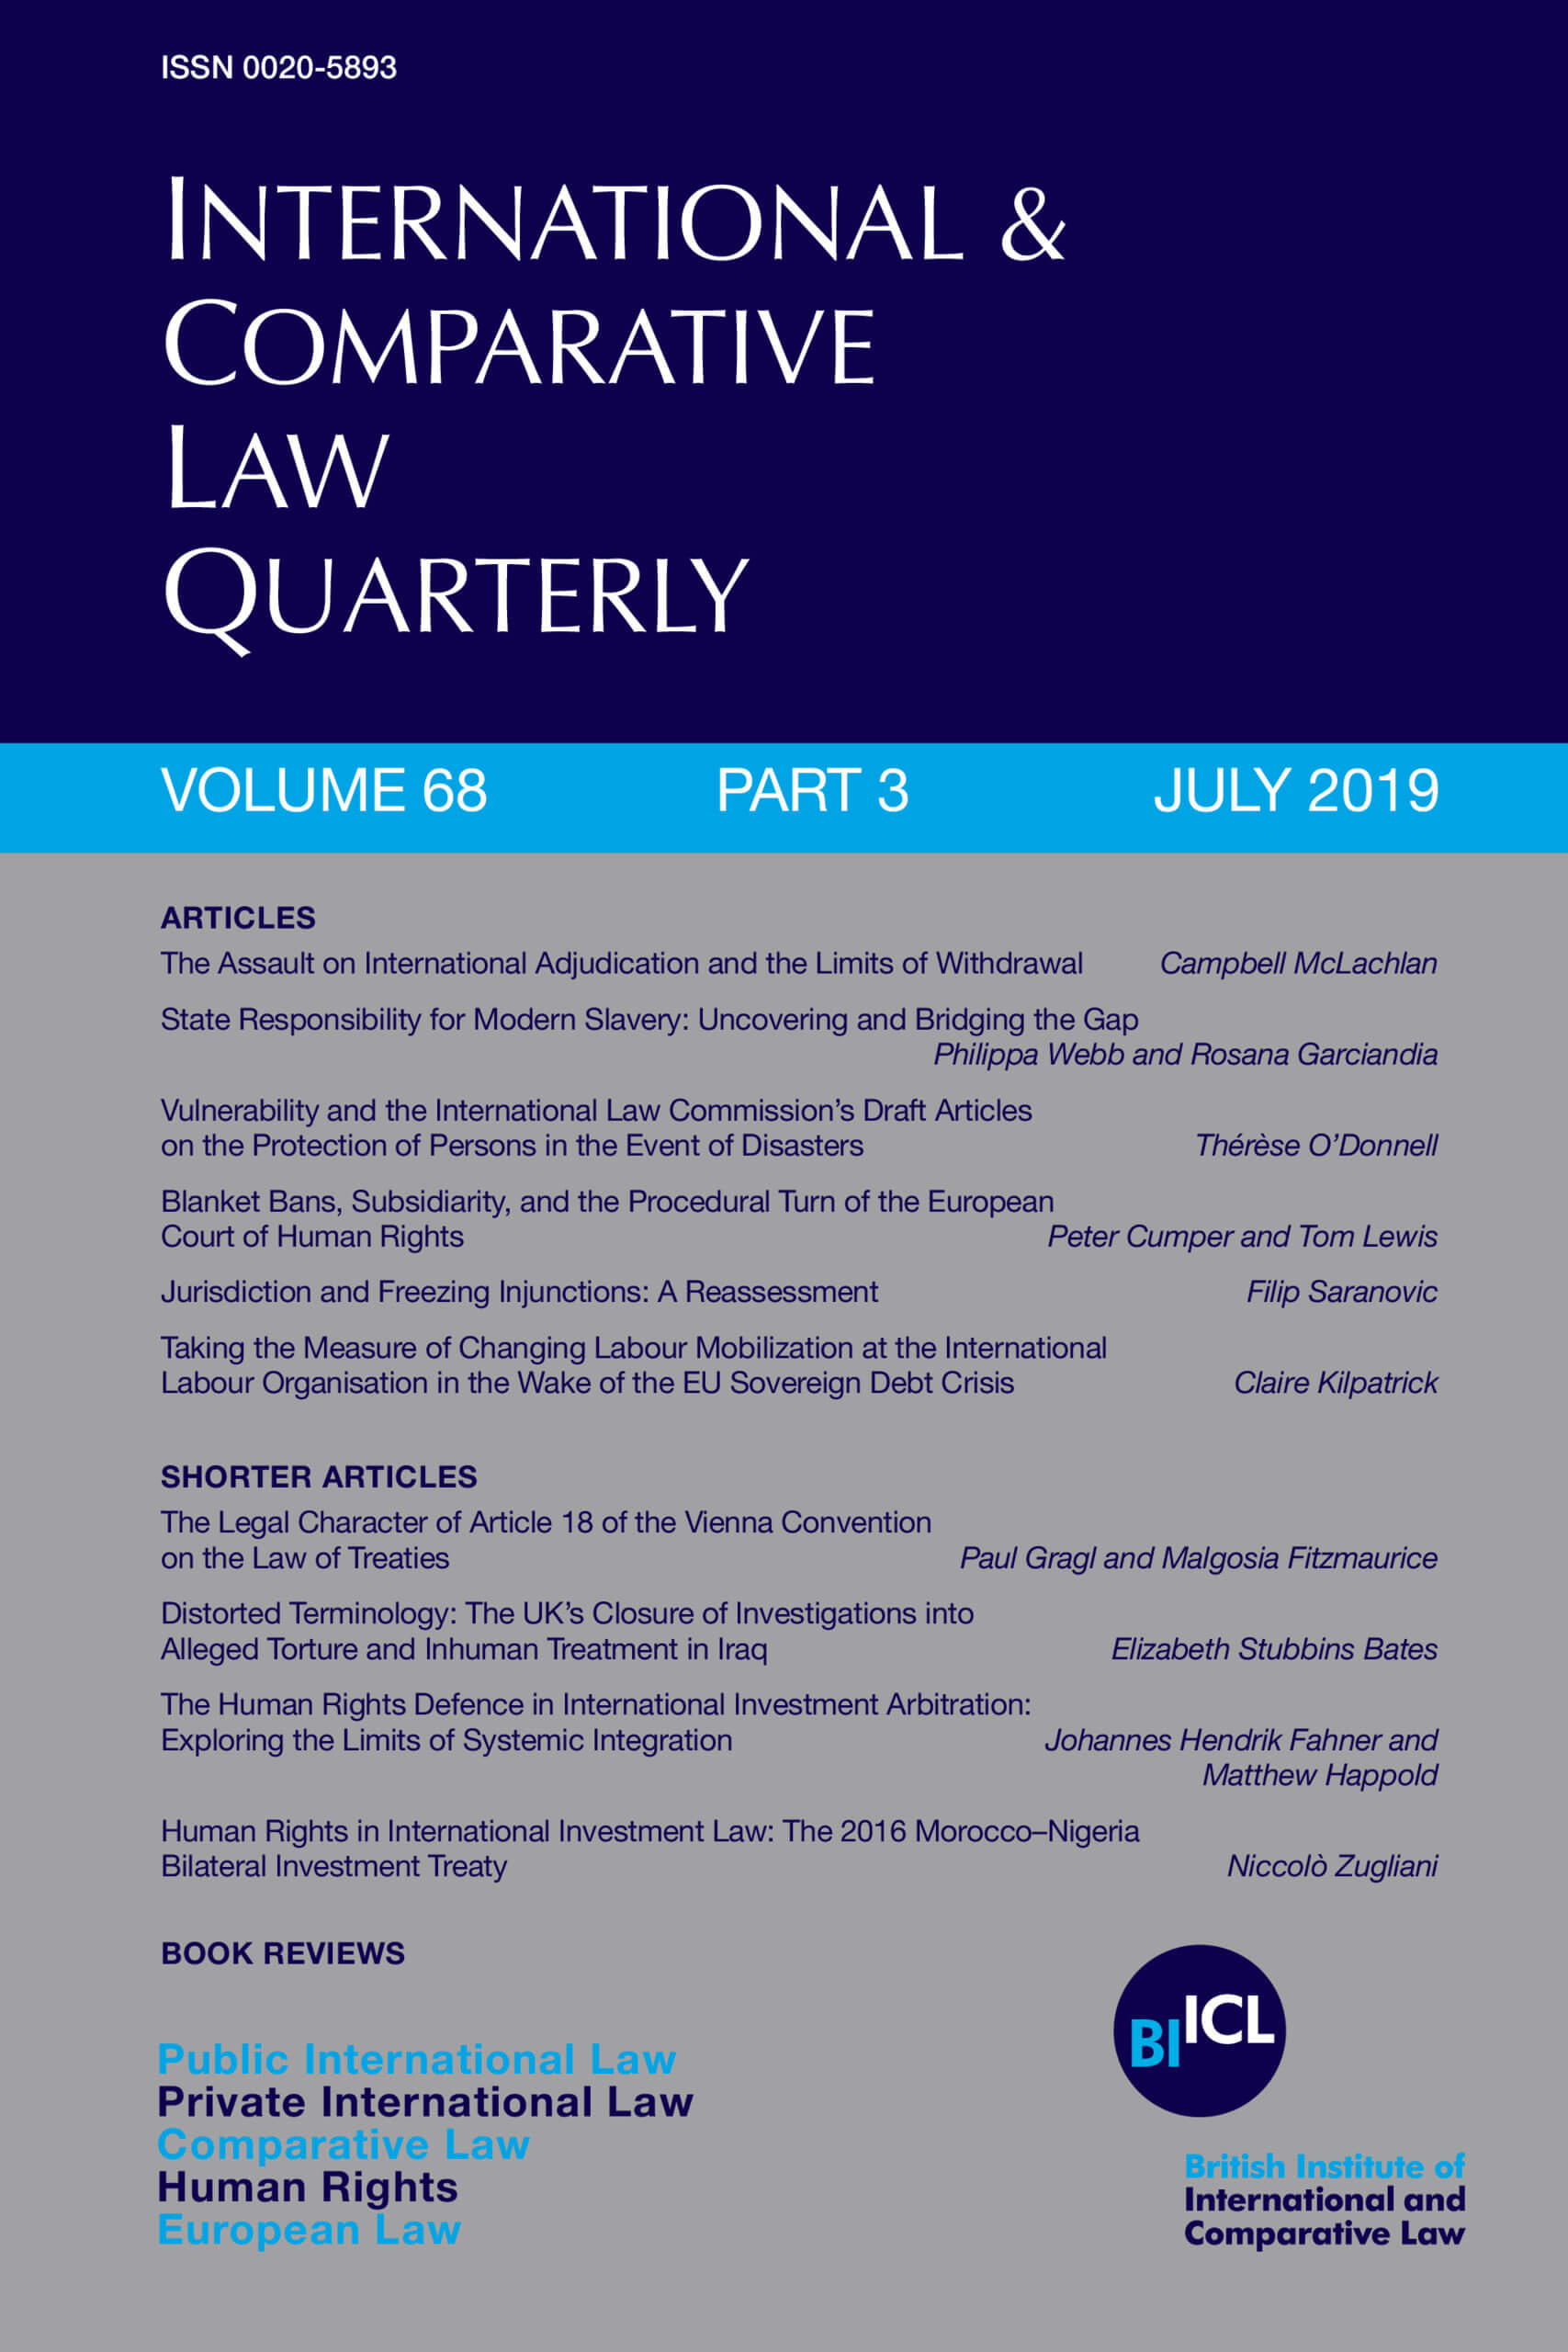 International & Comparative Law Quarterly - Volume 68 - Issue 3 - July 2019